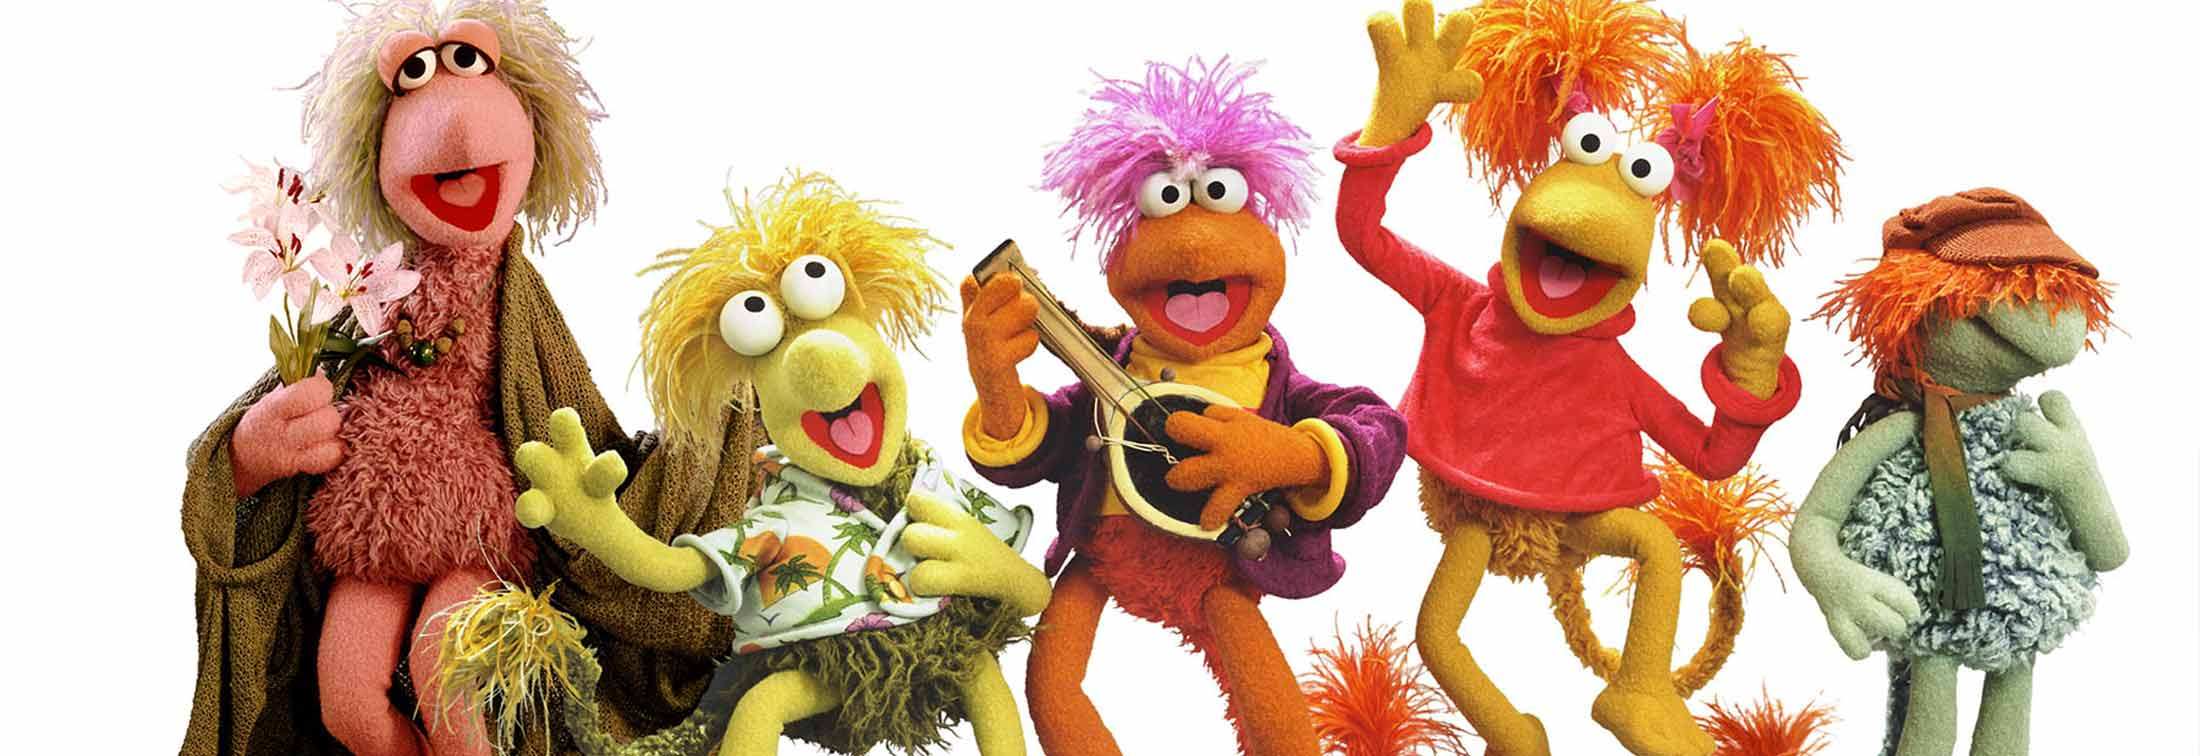 Fraggle Rock: Collection Two - The much-loved classic series remastered